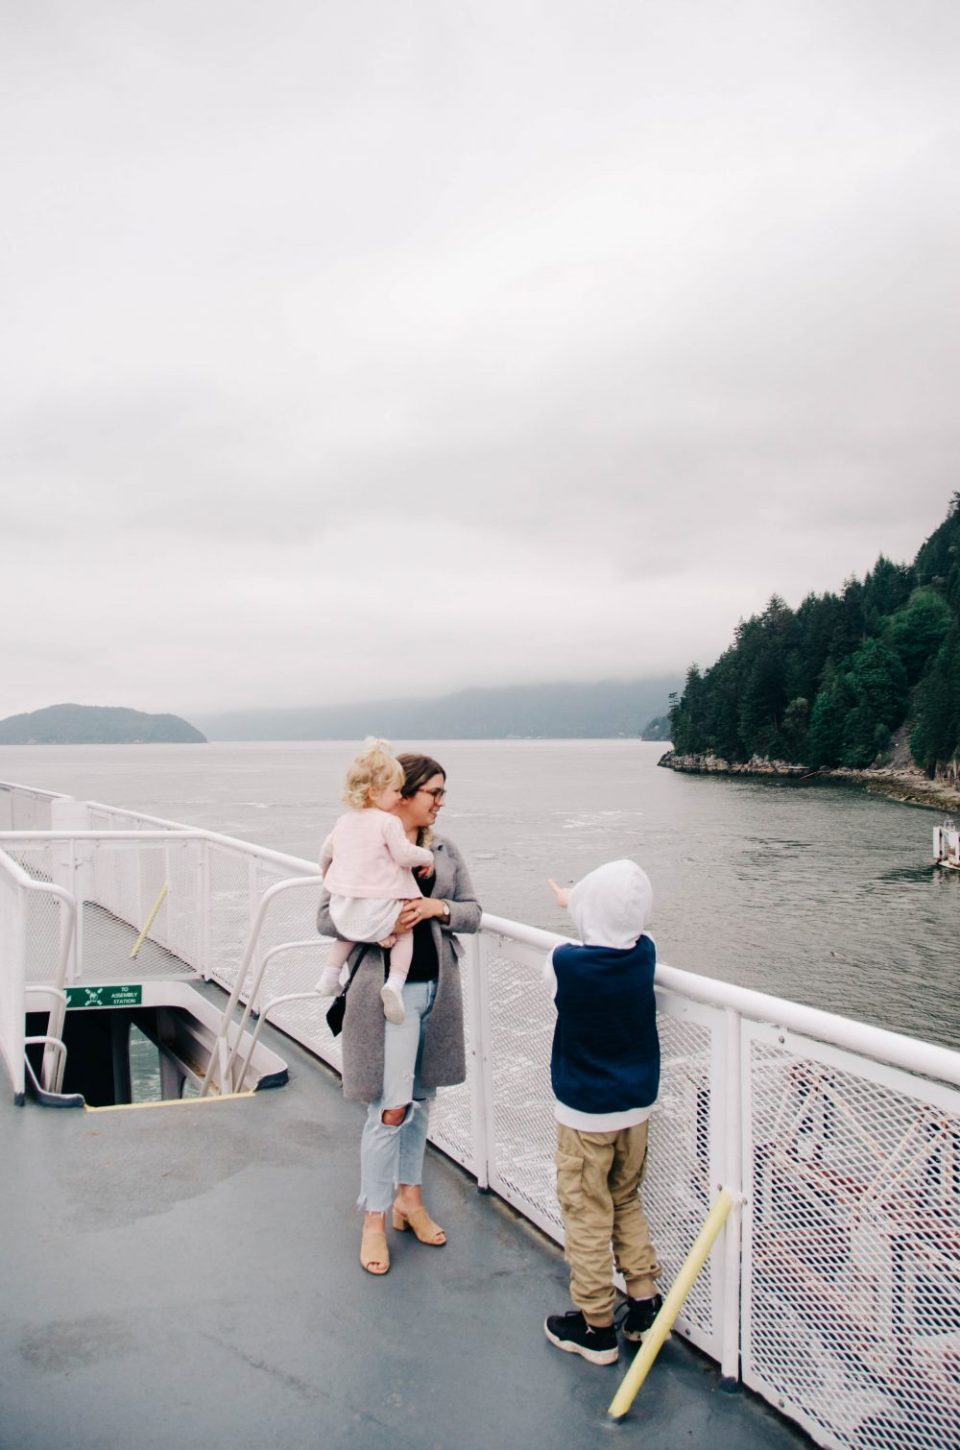 Things to do in Parksville Qualicum Beach   BC Ferries